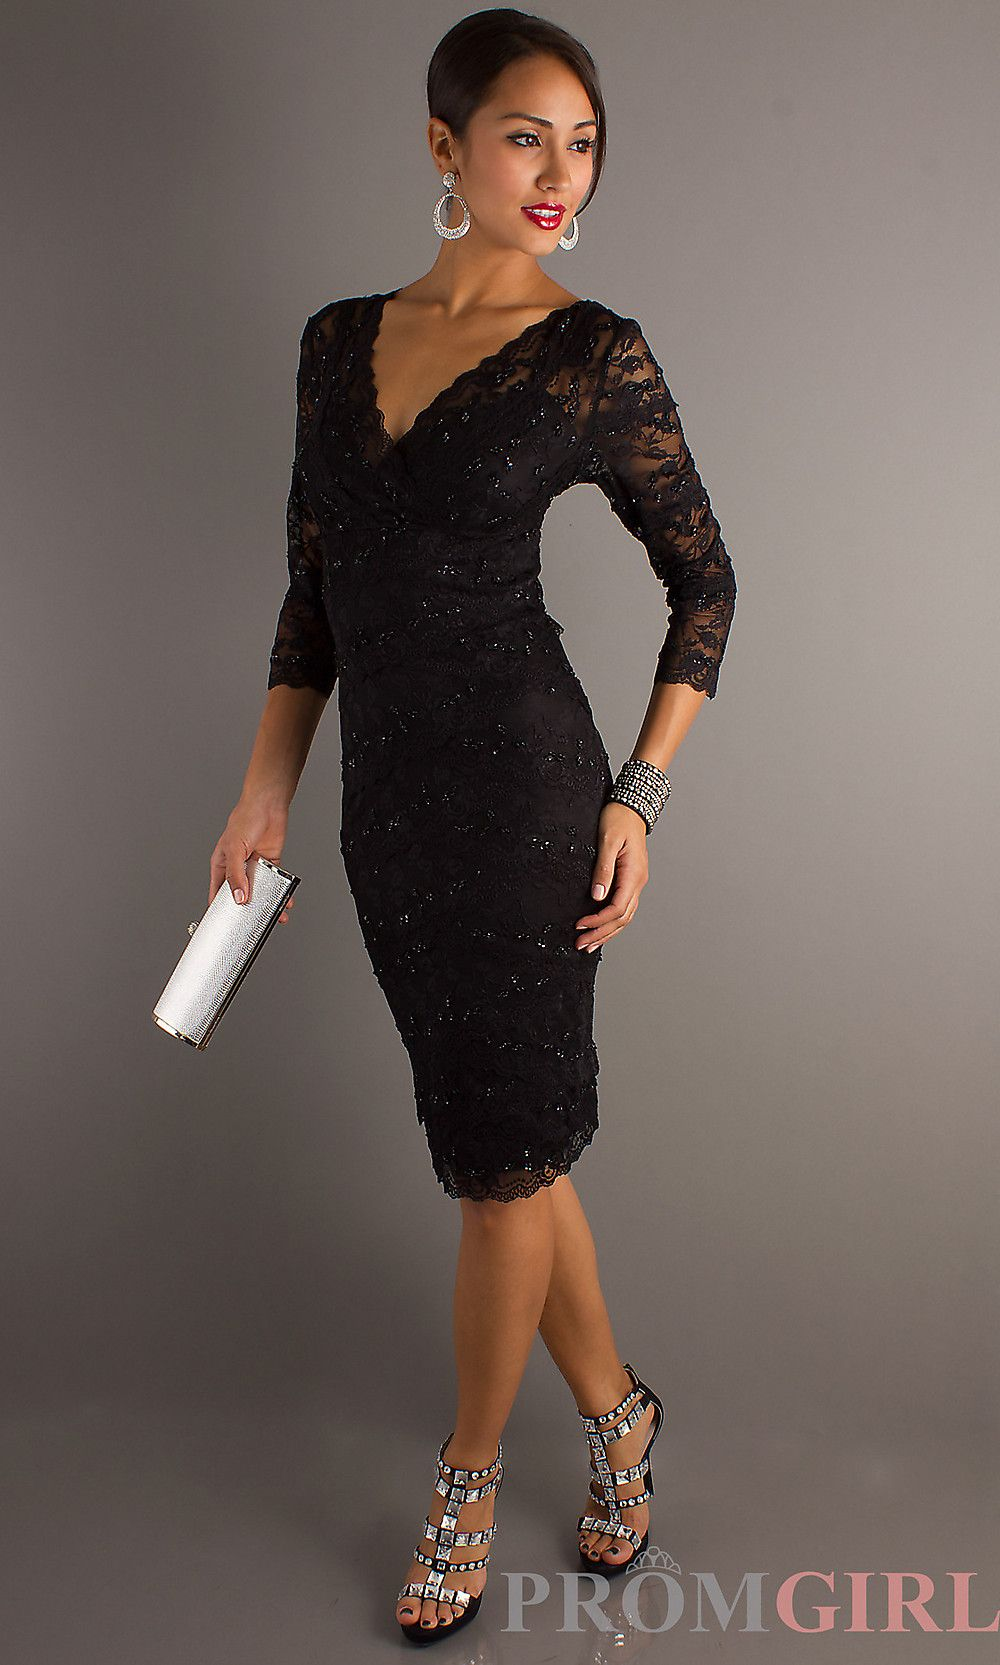 Black Lace Cocktail Dress perfect for hourglass figure :) | Fashion ...